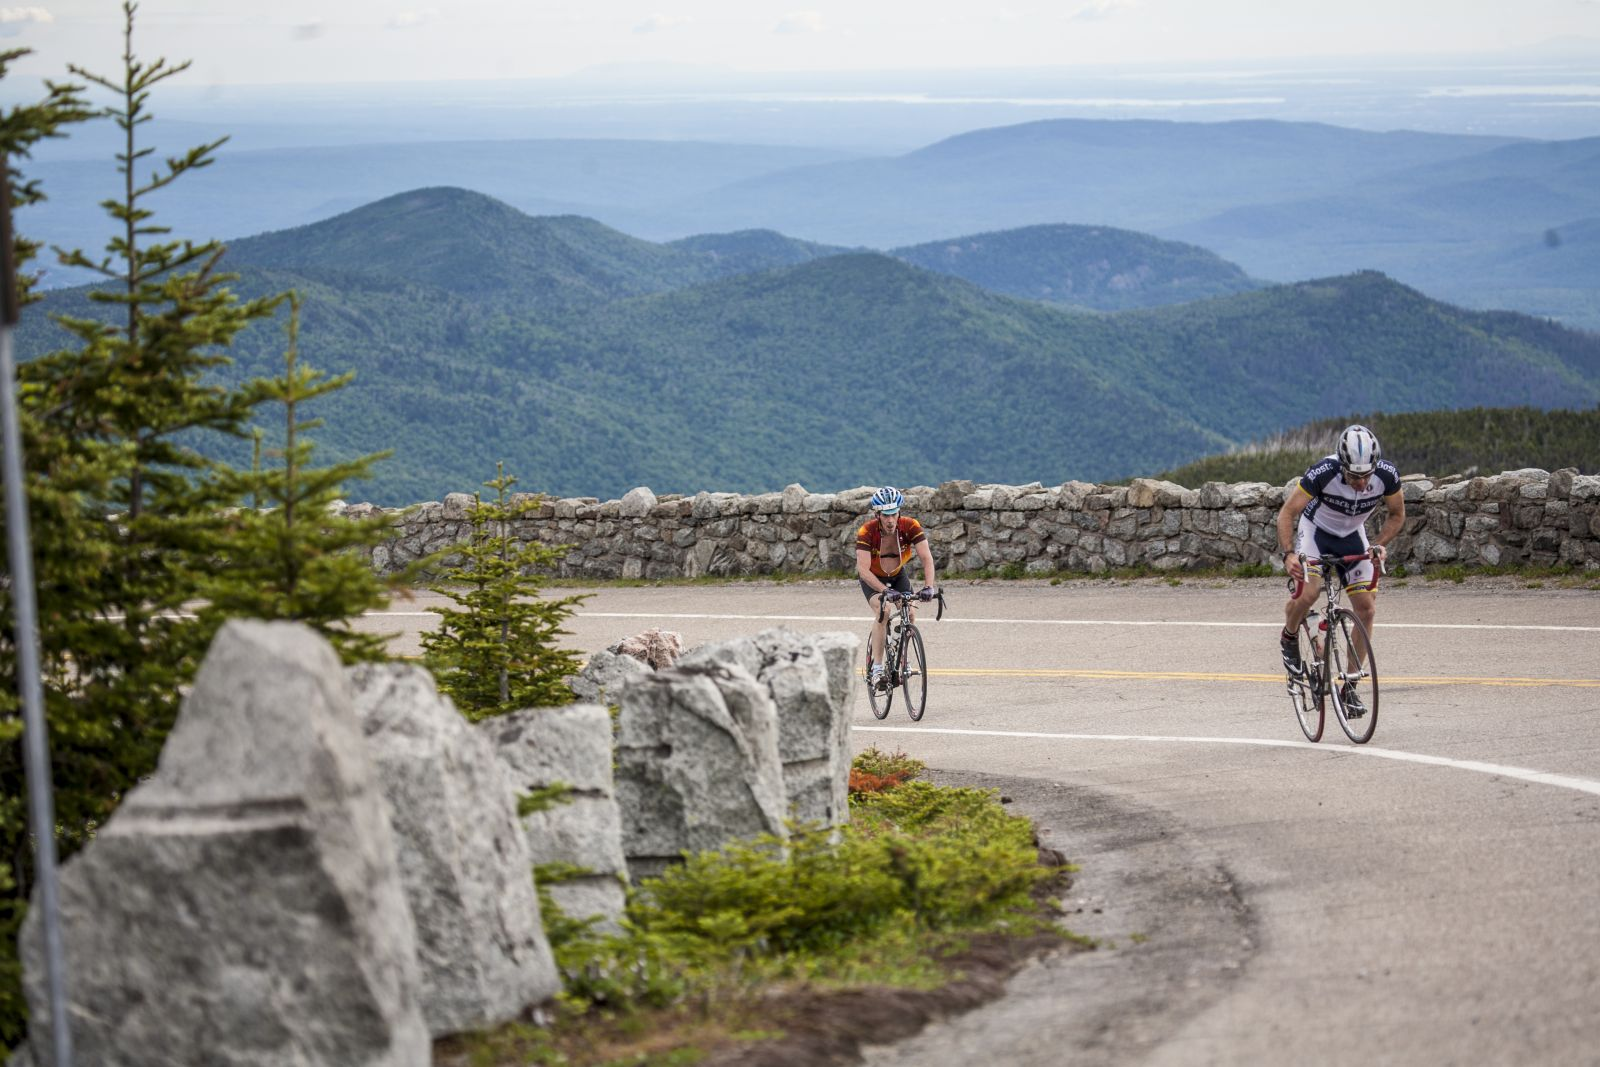 Cycling up the Whiteface toll road.